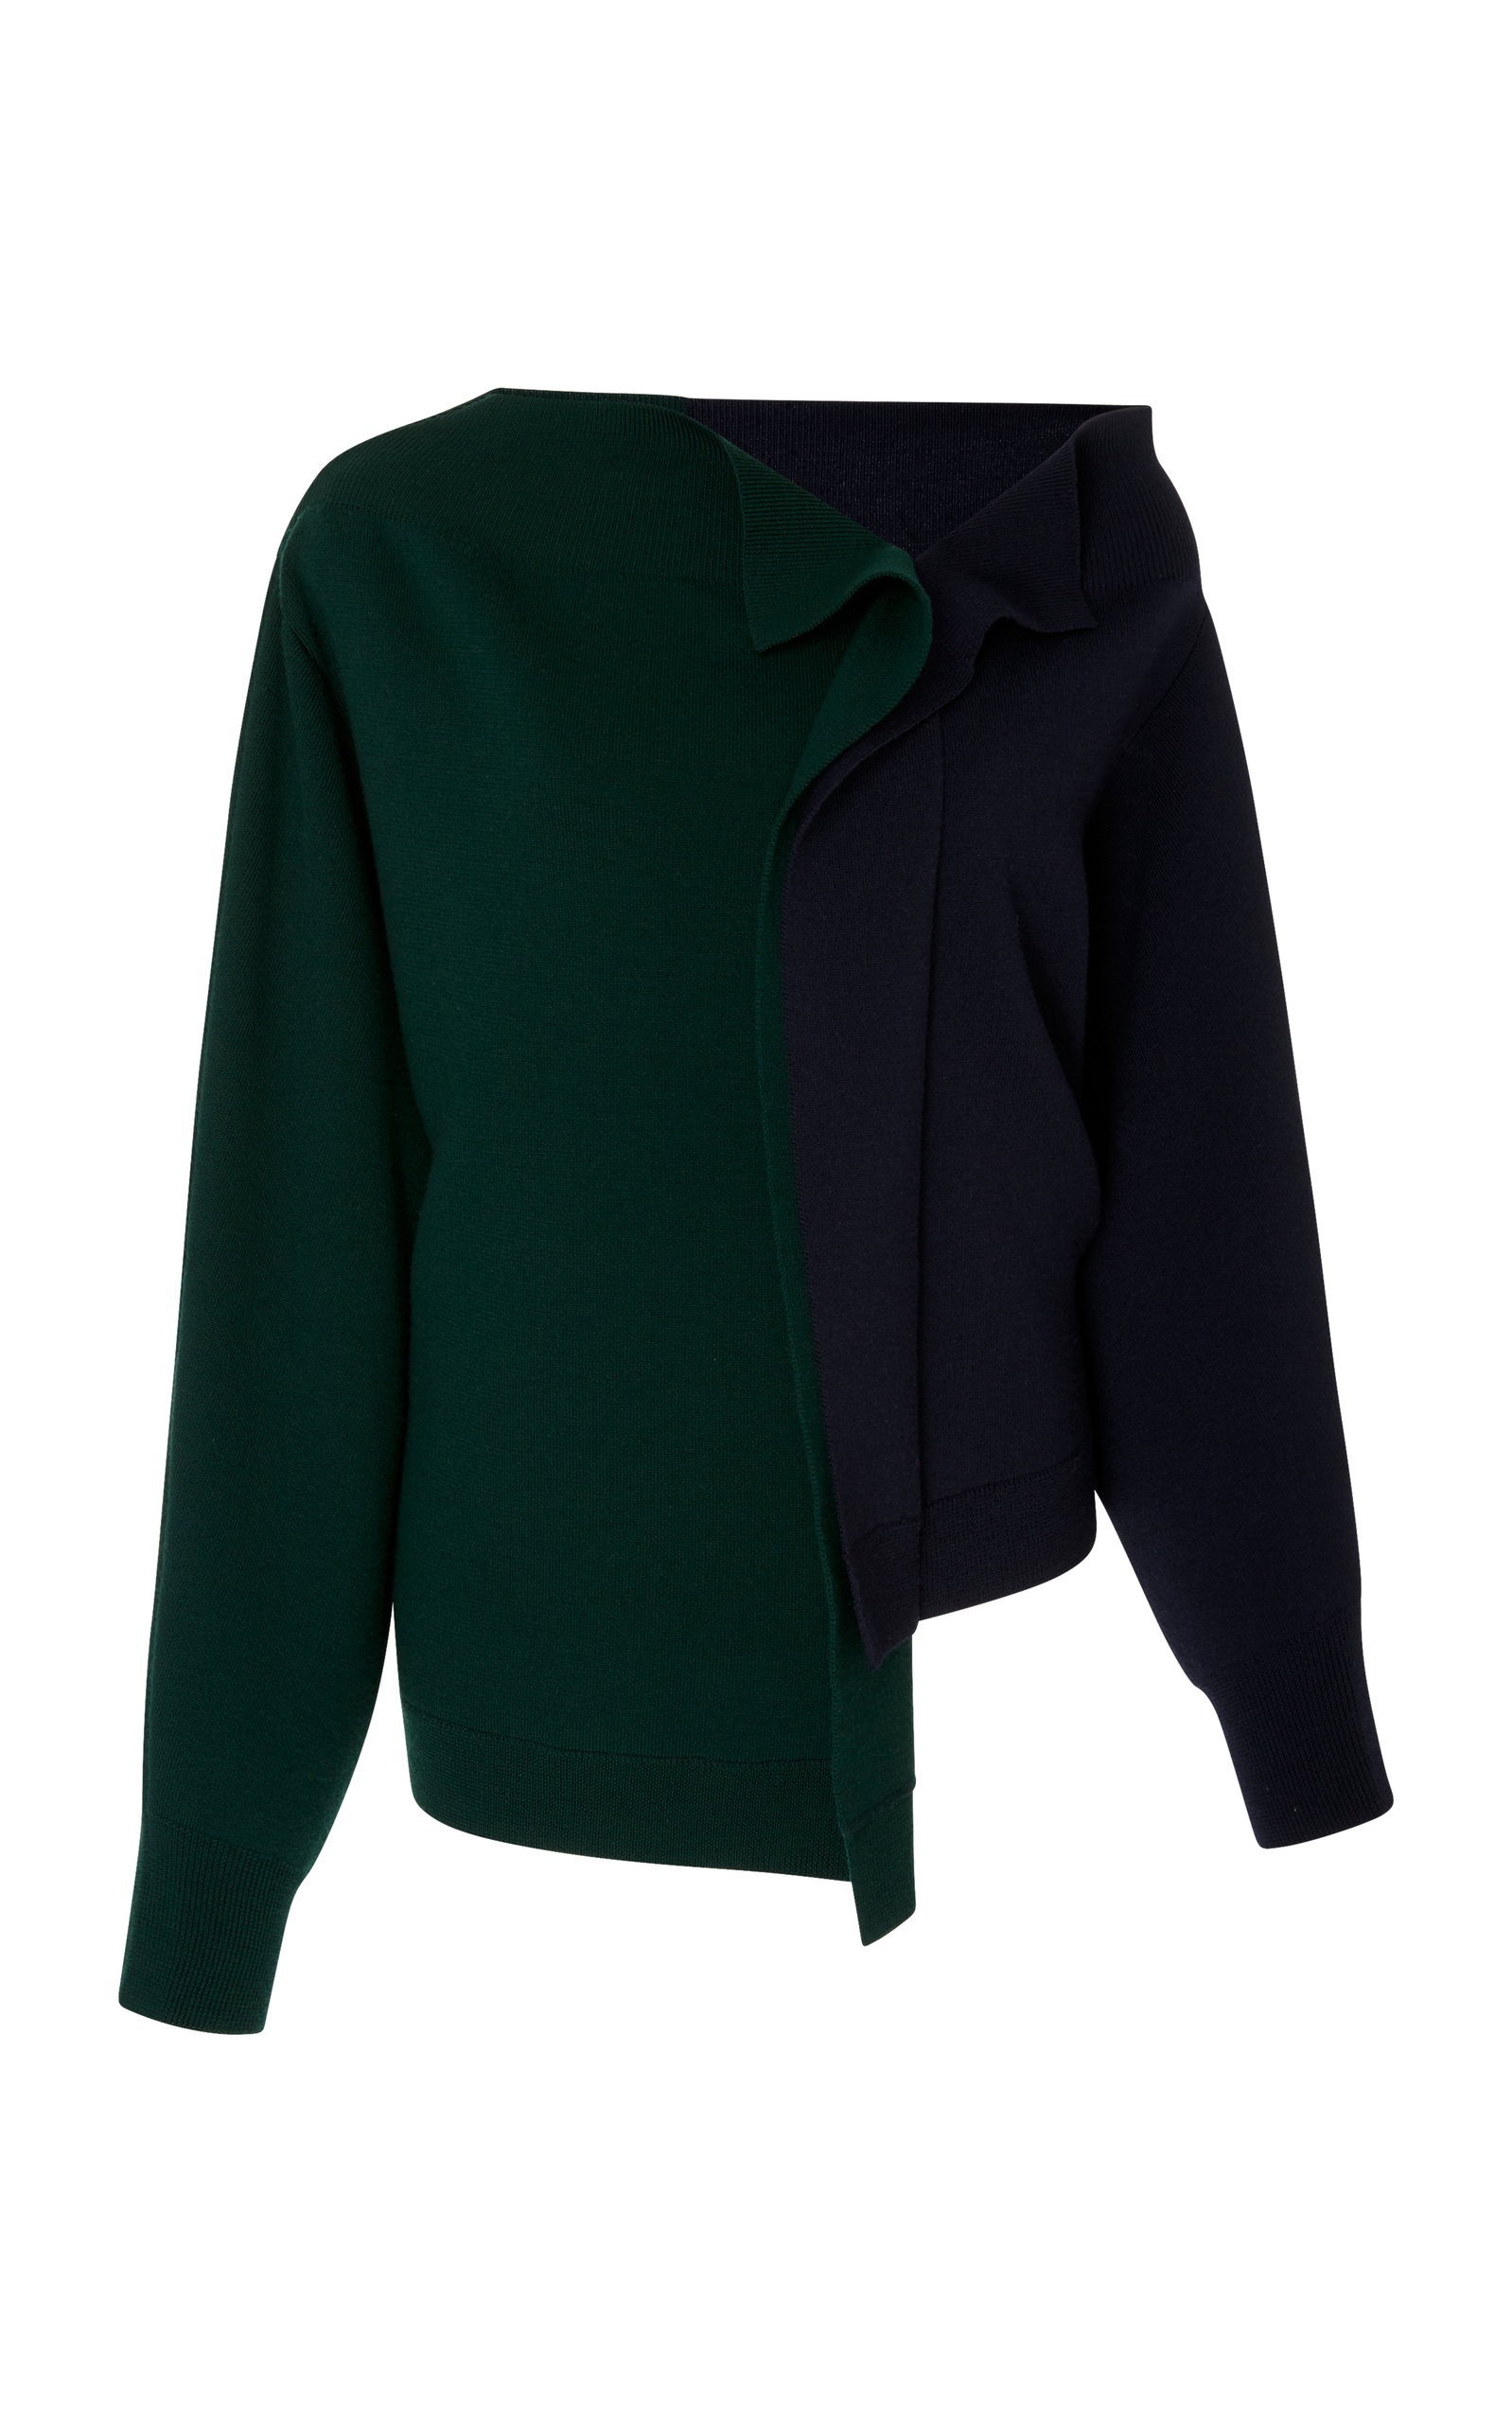 One-Shoulder Ruched-Back Colorblocked Sweater, Green